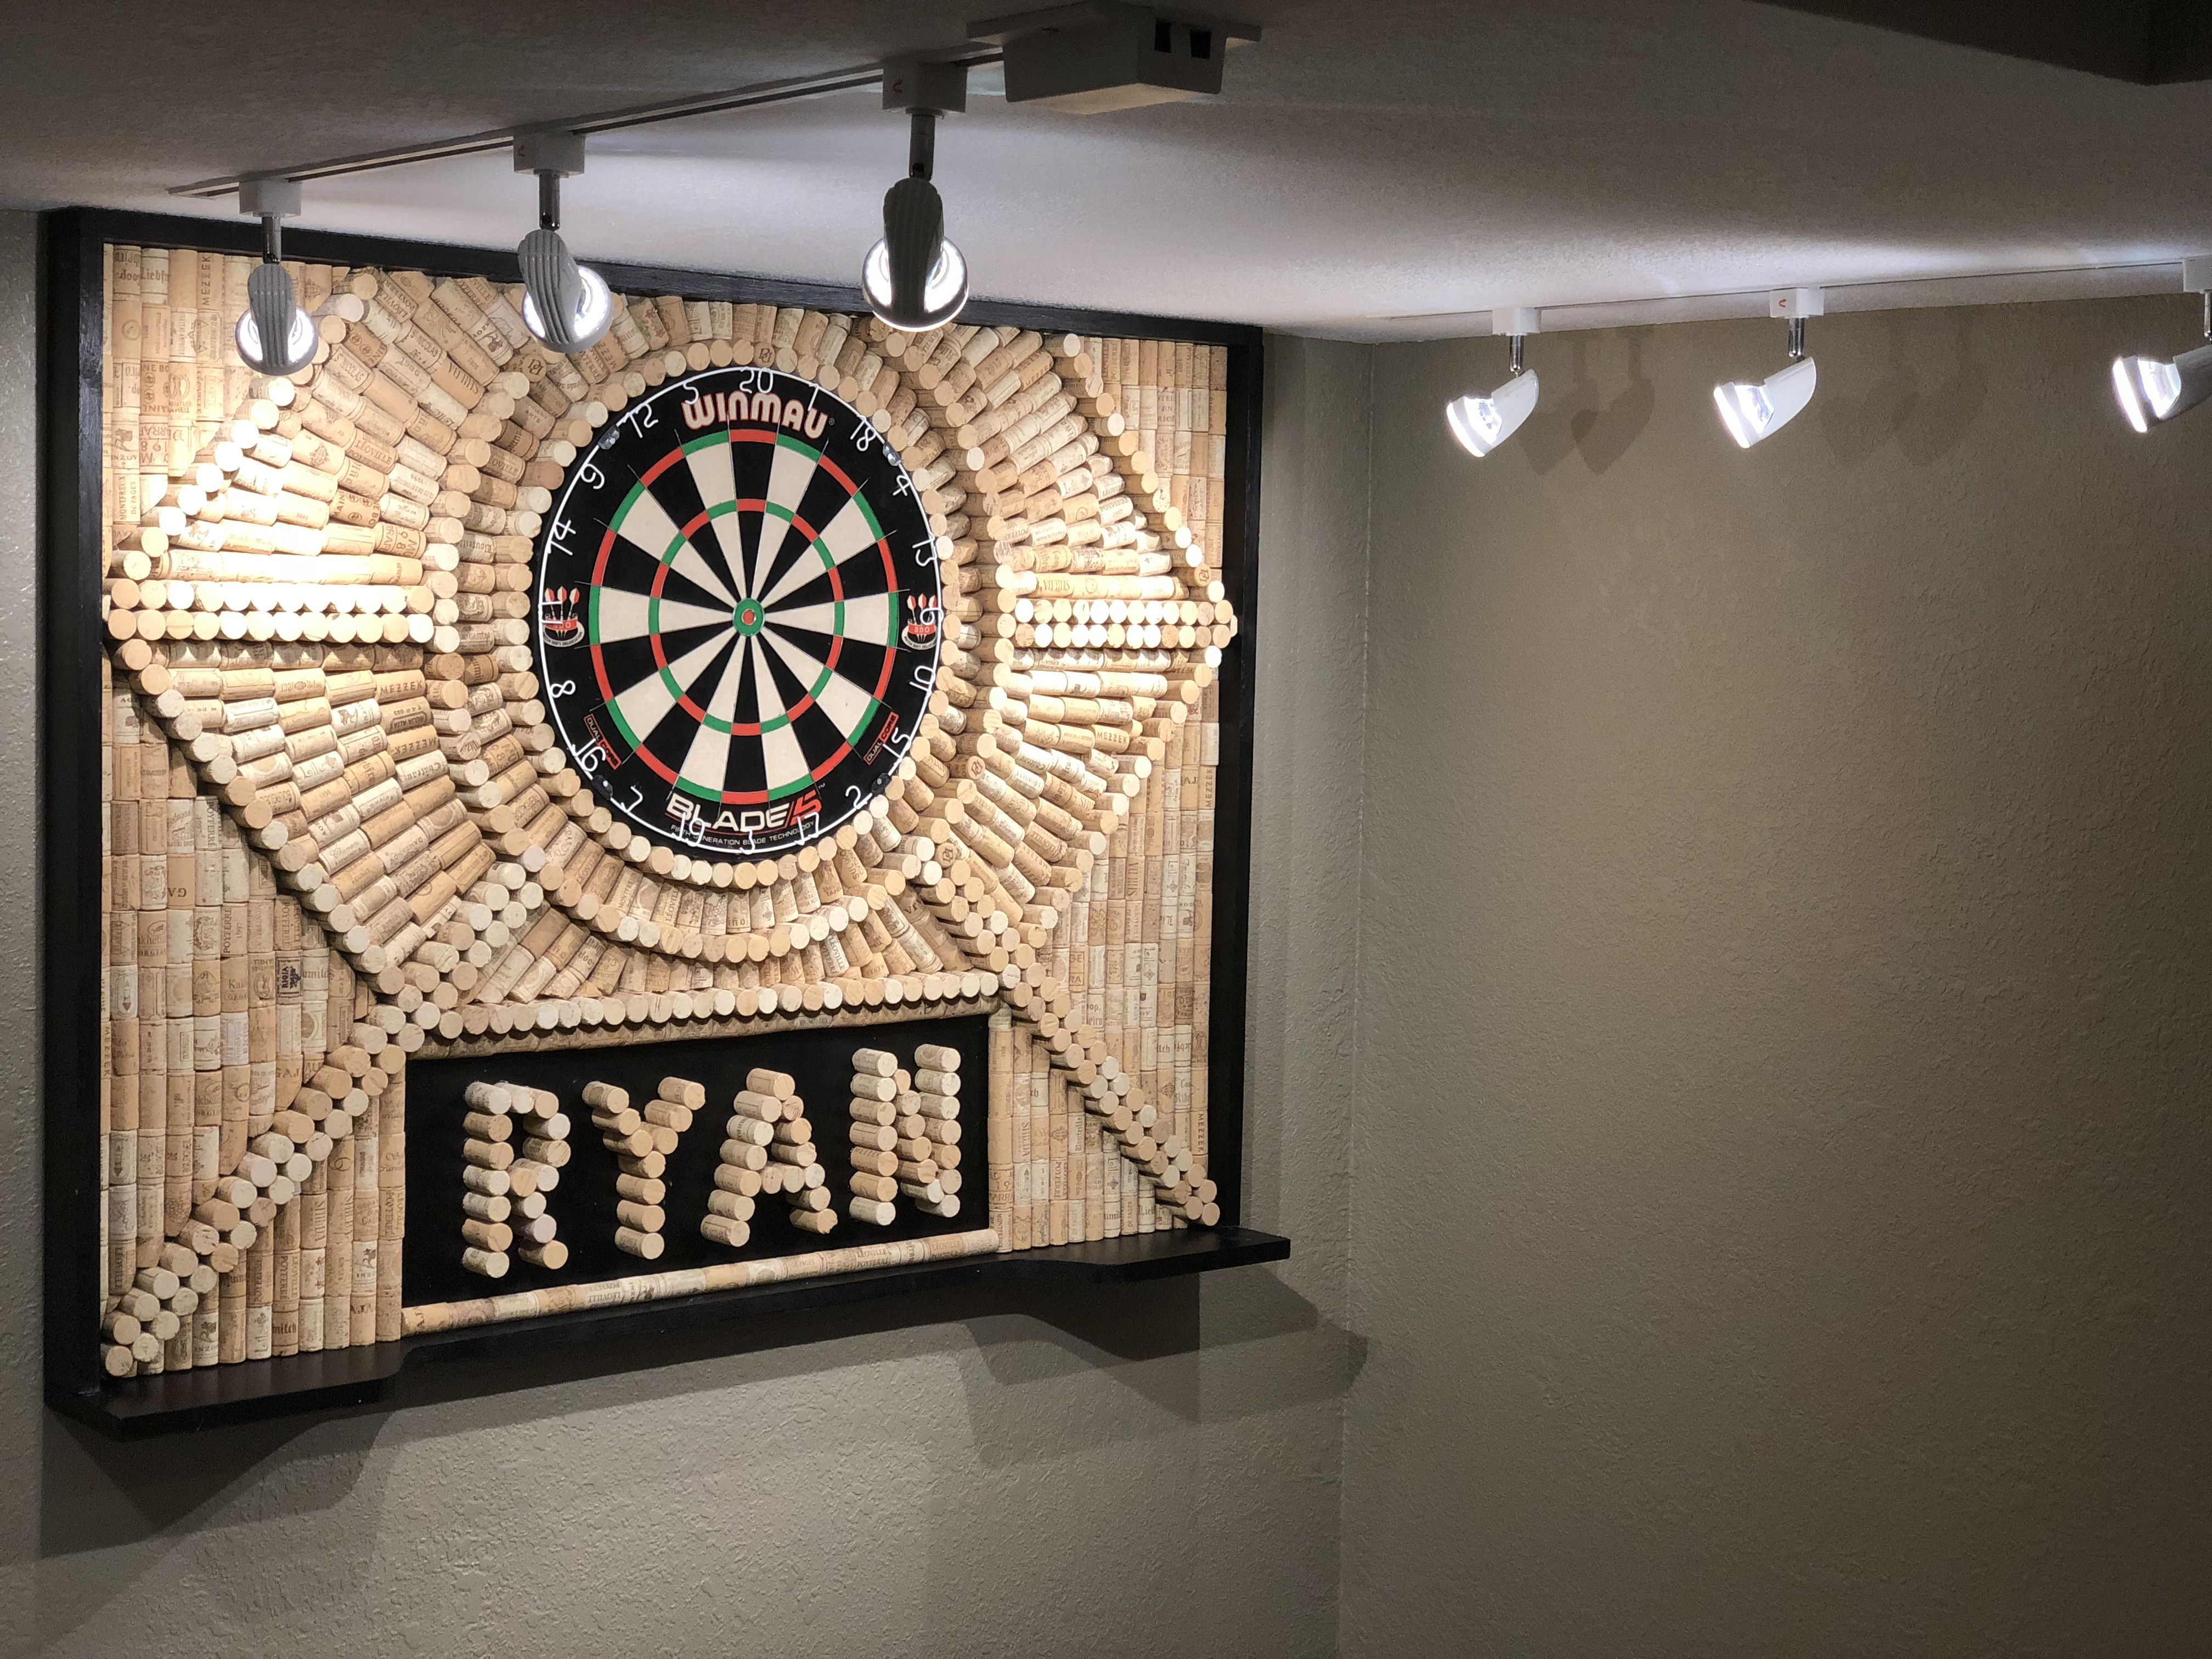 Diy Cork Dart Board Surround For The New Finished Basement With